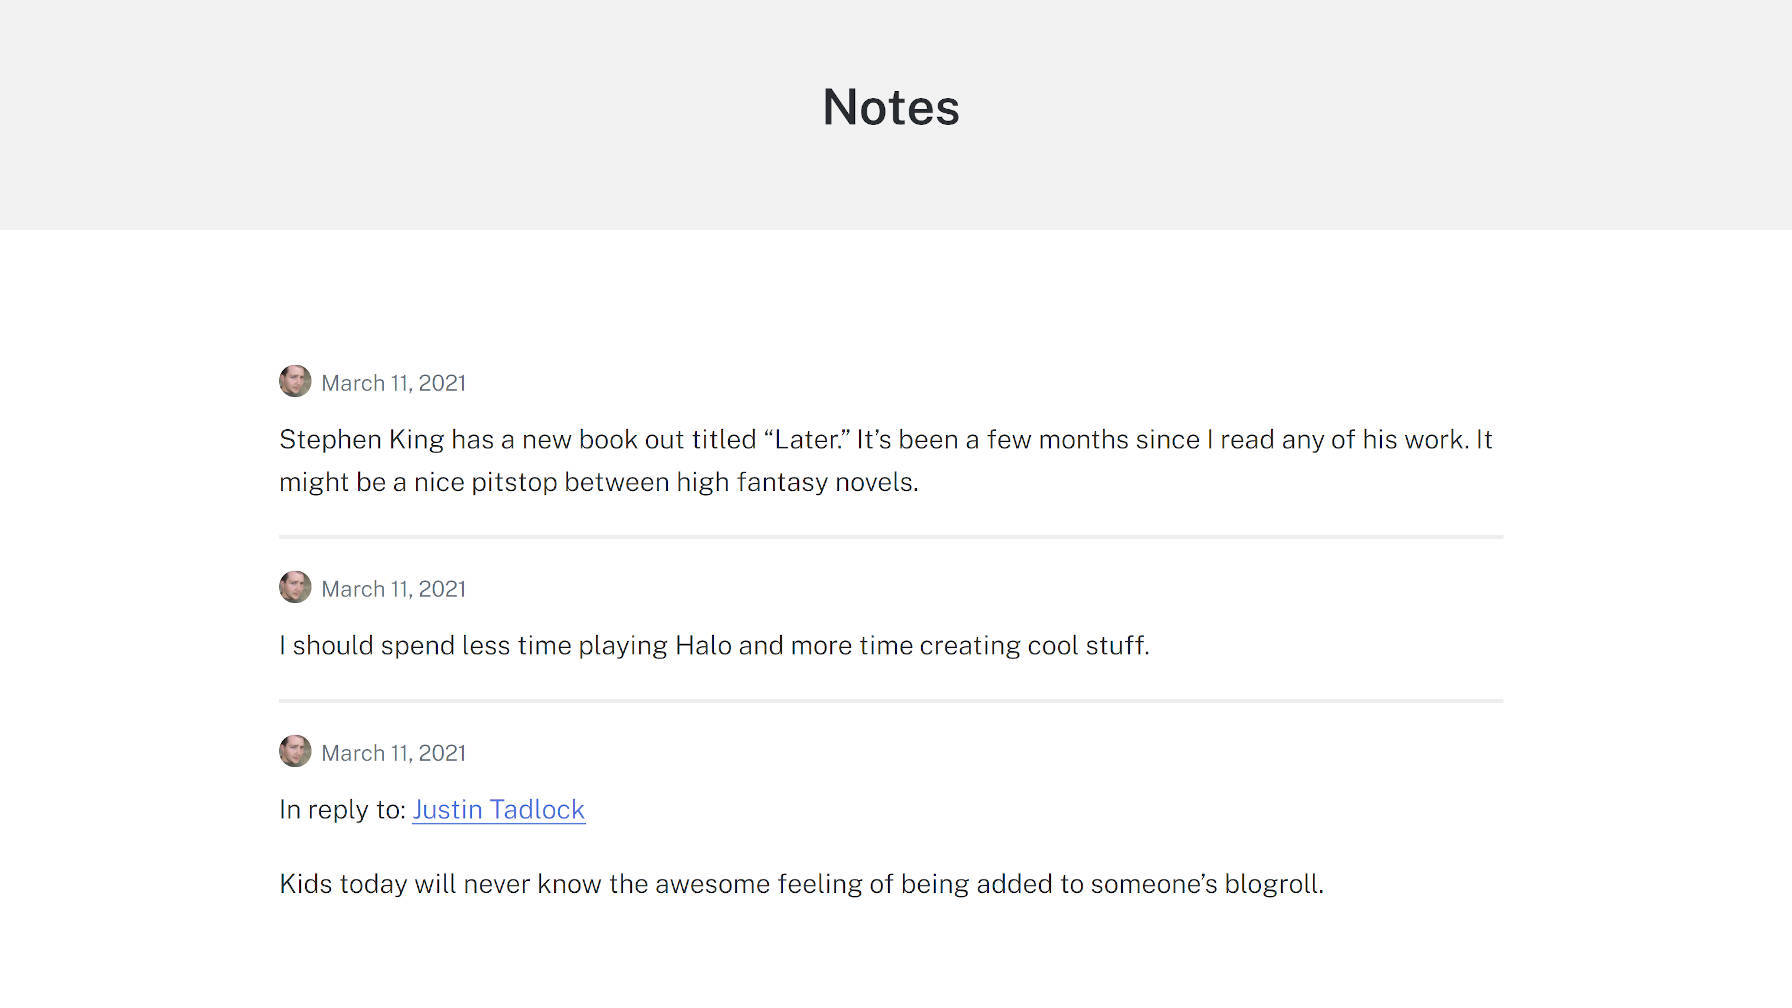 Archives view of notes from the Shortnotes plugin.